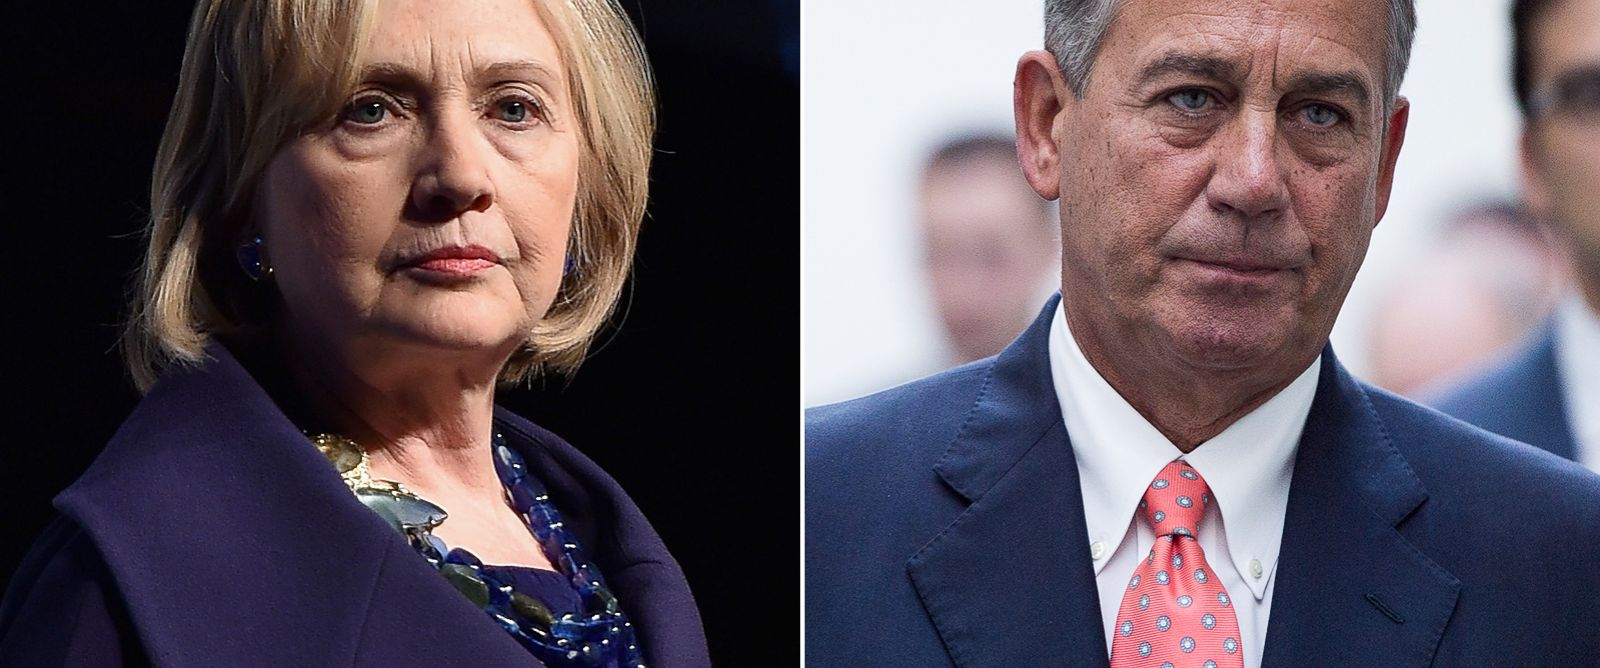 PHOTO: Hillary Clinton | John Boehner